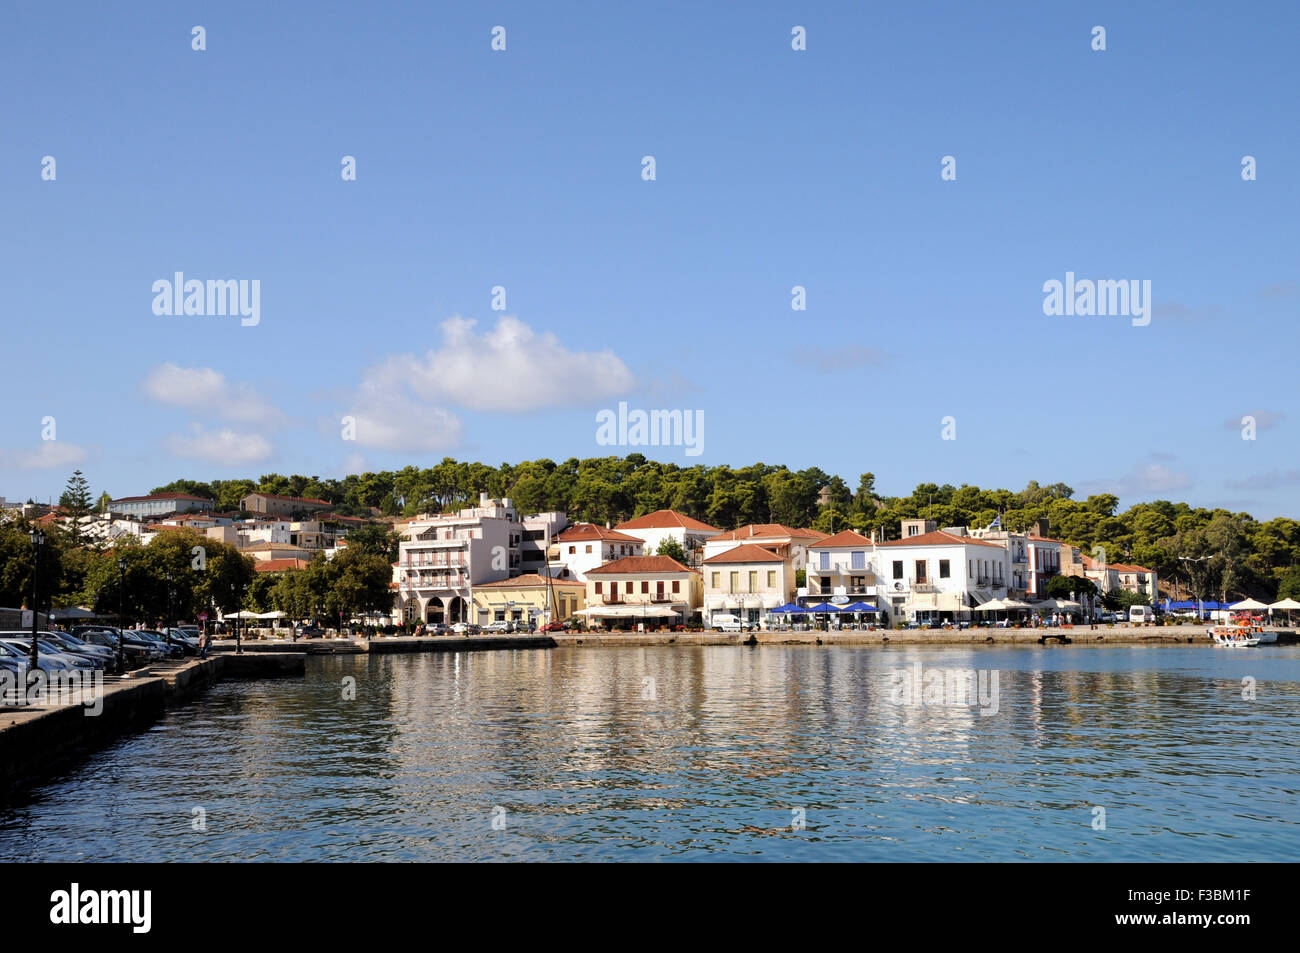 The harbour and harbour side restaurants at the Greek town and port of Pilos (Pylos) in the Peloponnese. - Stock Image